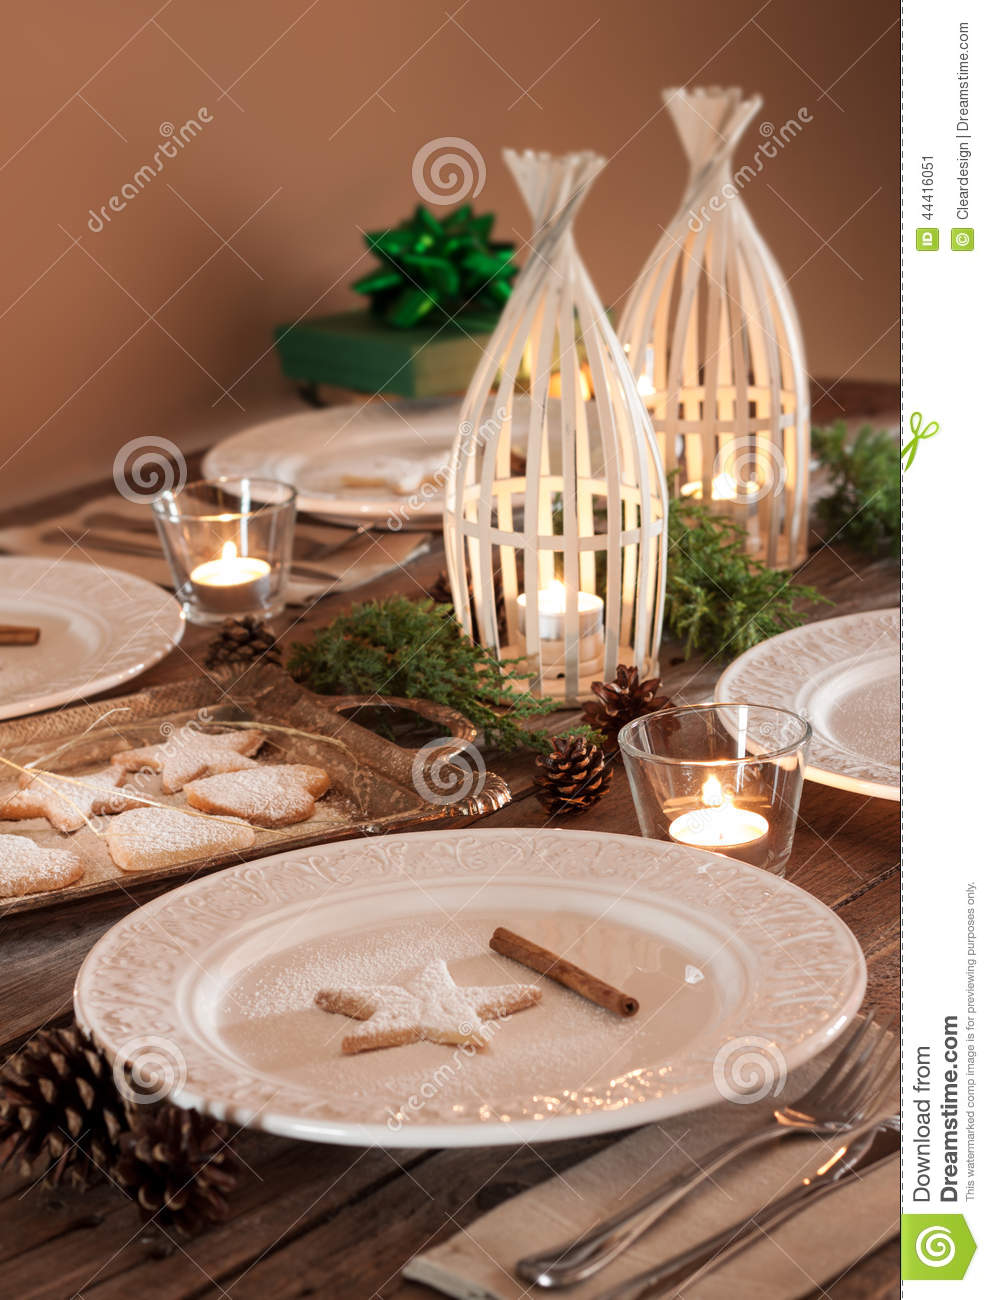 stock photo christmas table setting rustic style natural decorations elegant white plates cookies pine tree branch pinecones candles